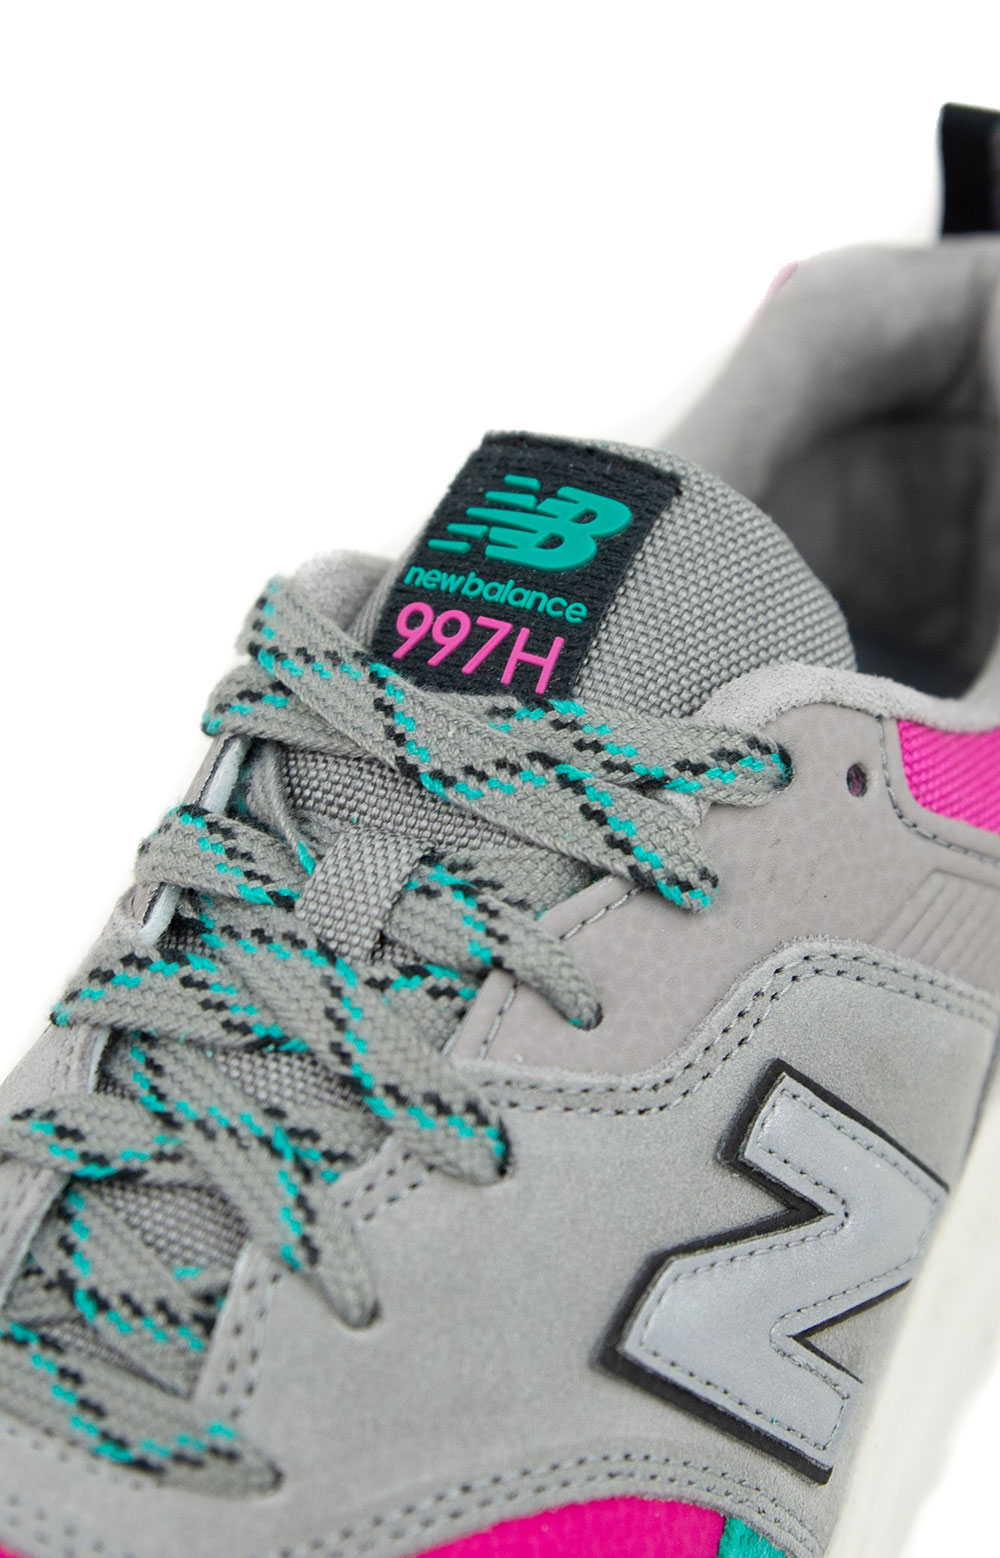 (CM997HYS) 997H Shoes -  Turquoise/Grey 3